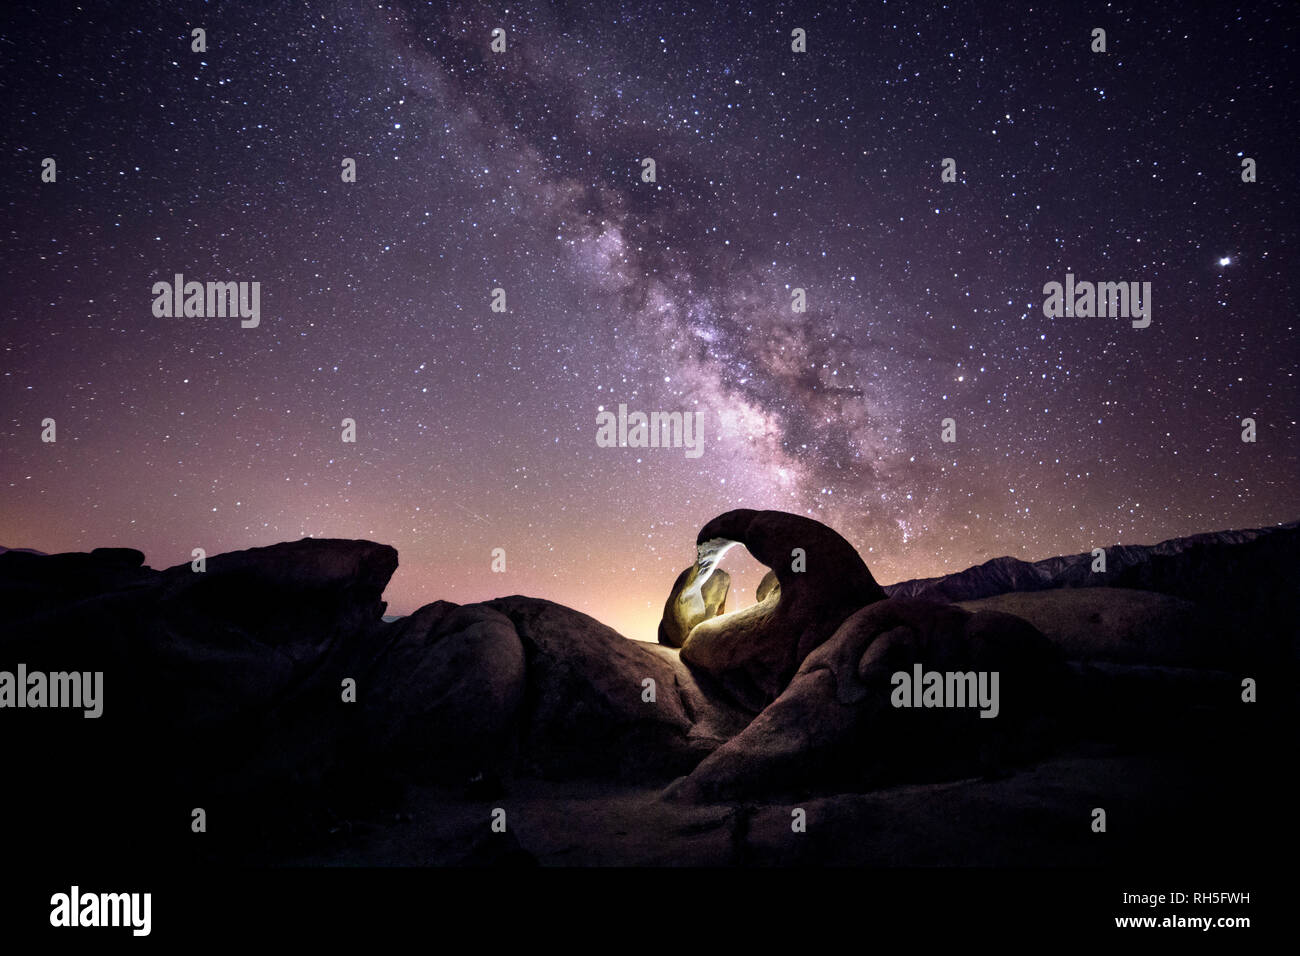 Lanscape view of the desert with stars and milky way galaxy over the night sky.  The image depicts astrophotography and nature.  The universe can be s - Stock Image